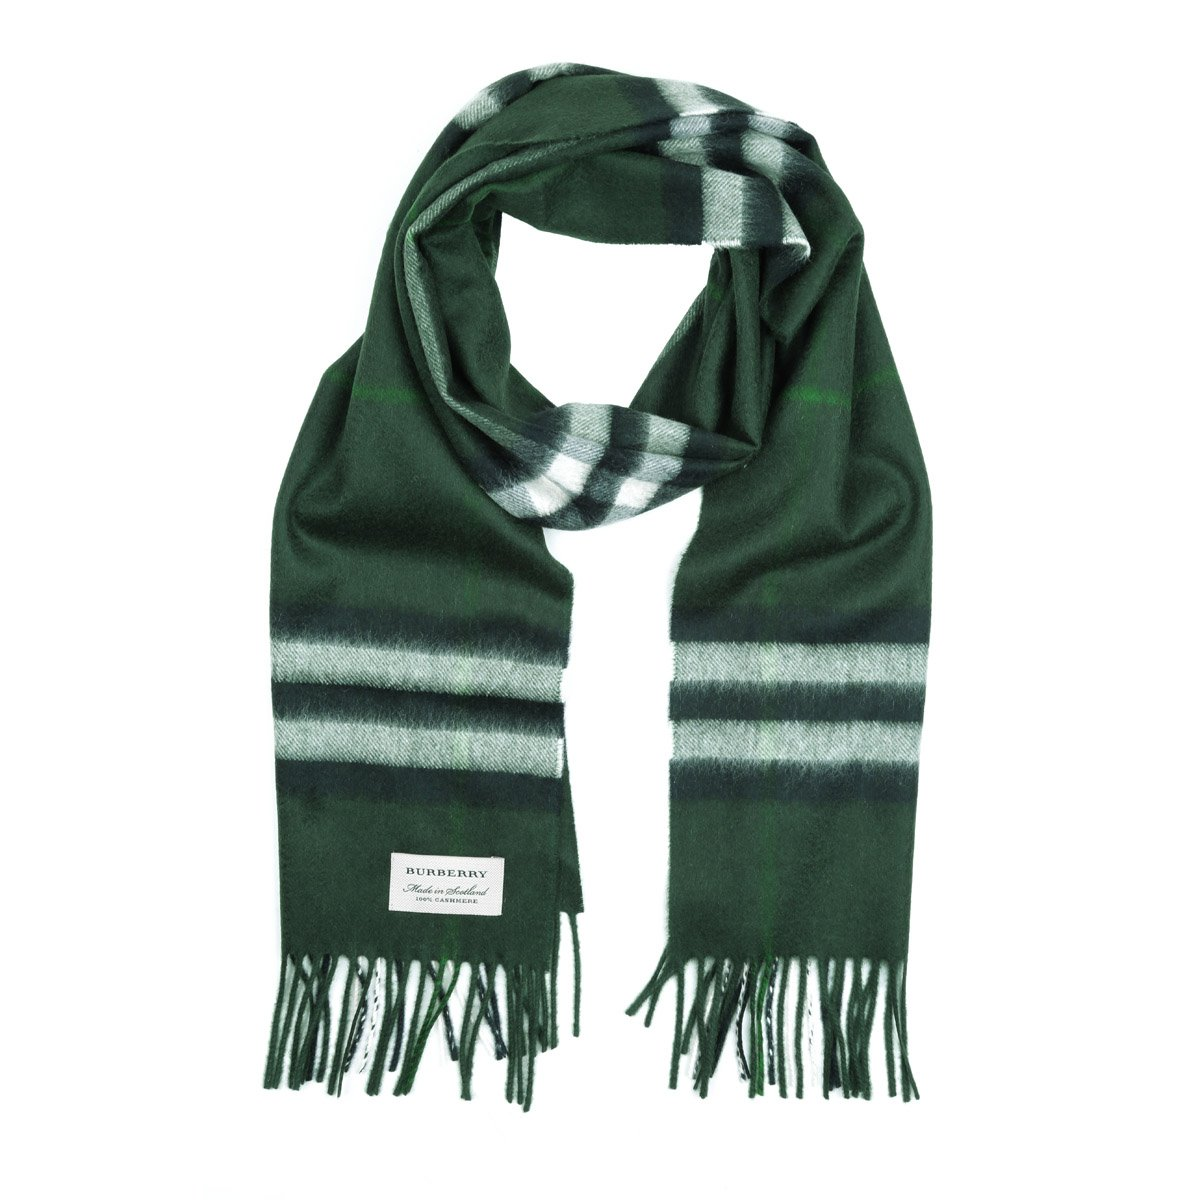 Burberry Women's Classic Check Cashmere Scarf (One Size, Dark Forest Green)